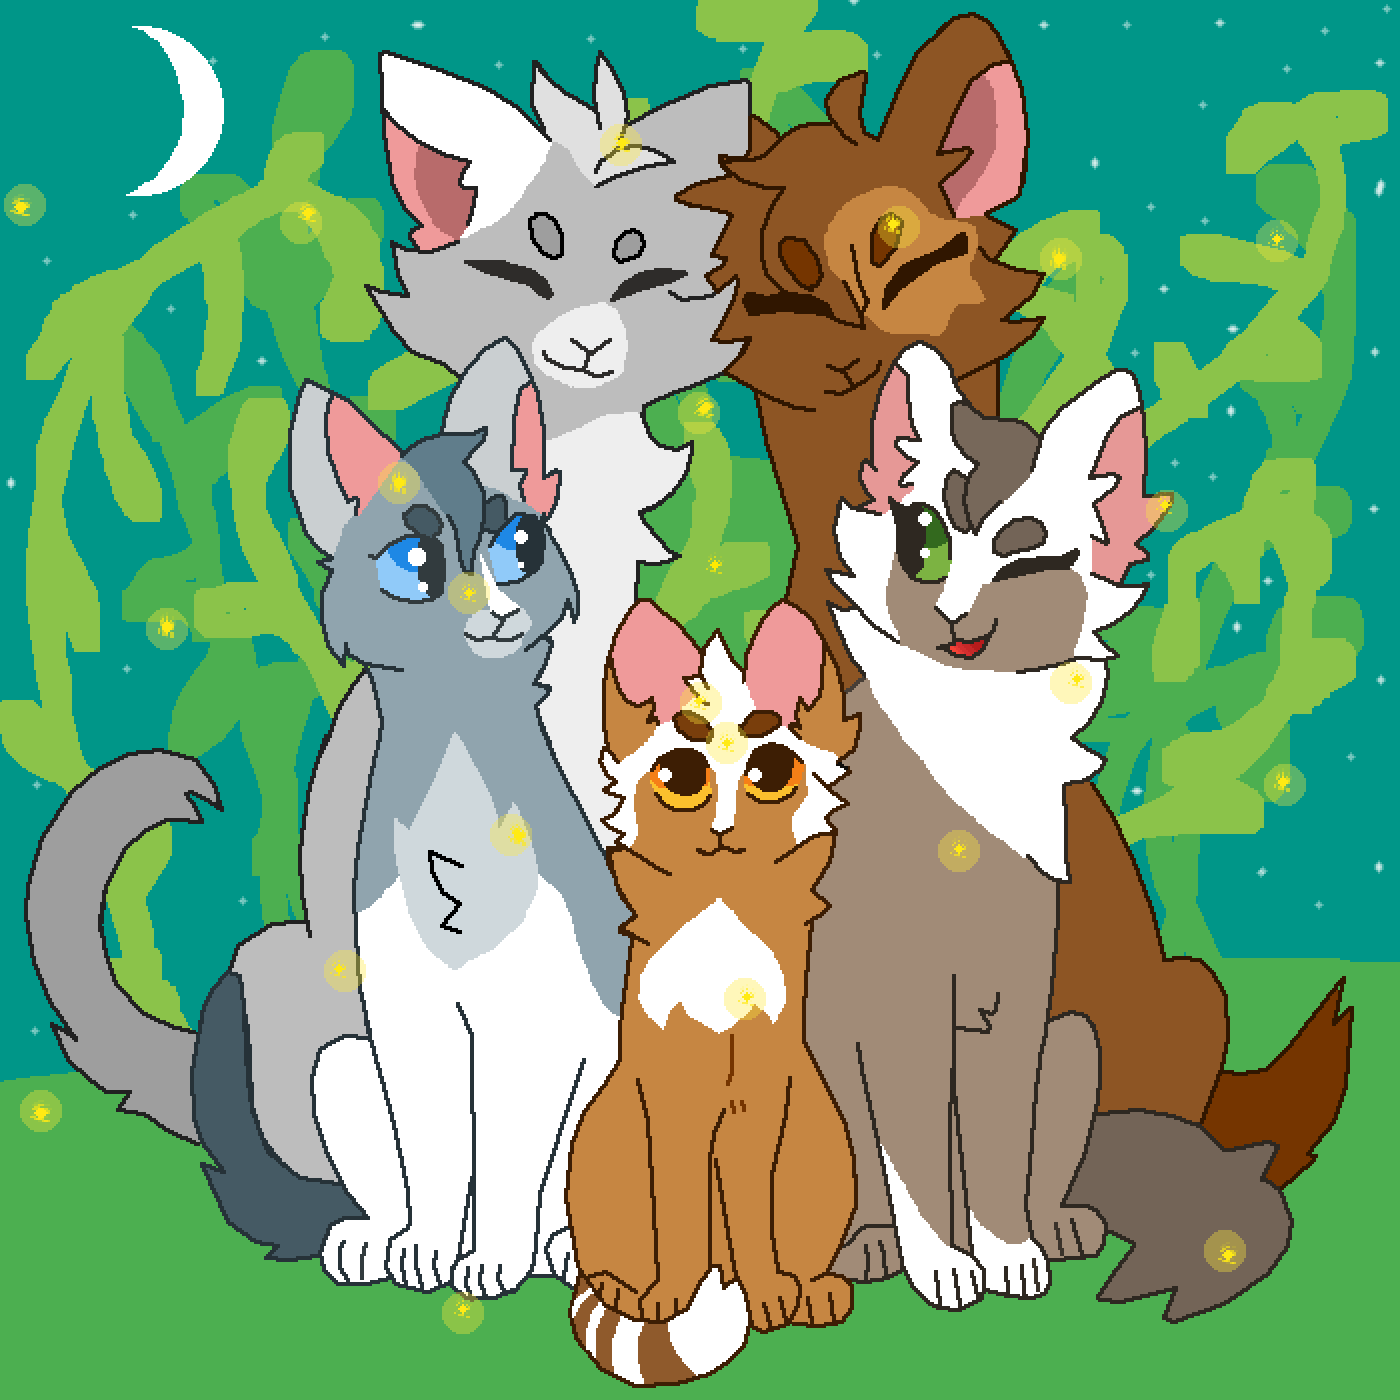 Starlingfeather, Mousetail, Skypaw, Dustkit, and Stormp